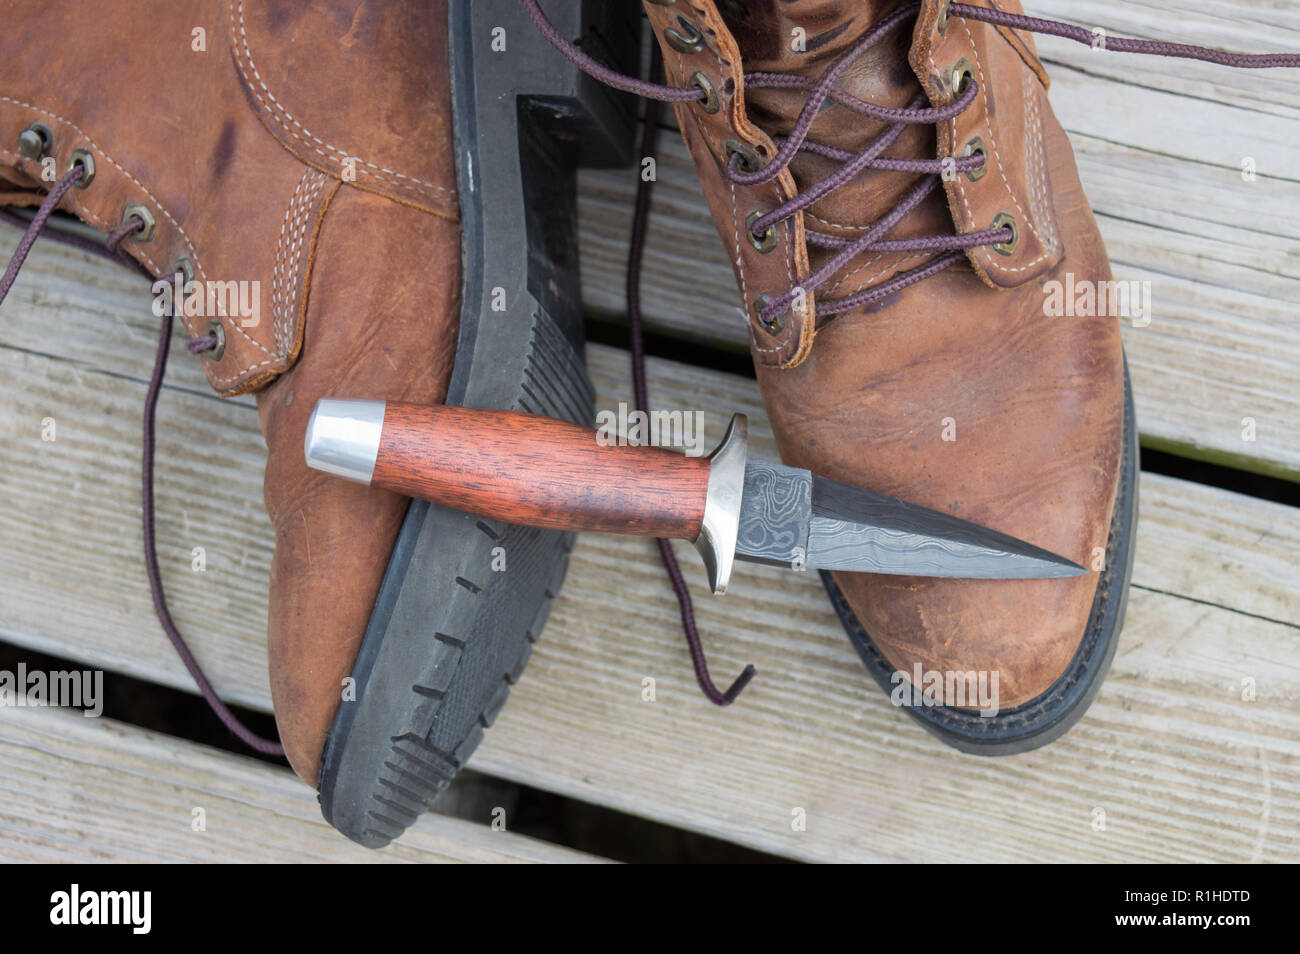 A boot knife displayed on work boots. - Stock Image